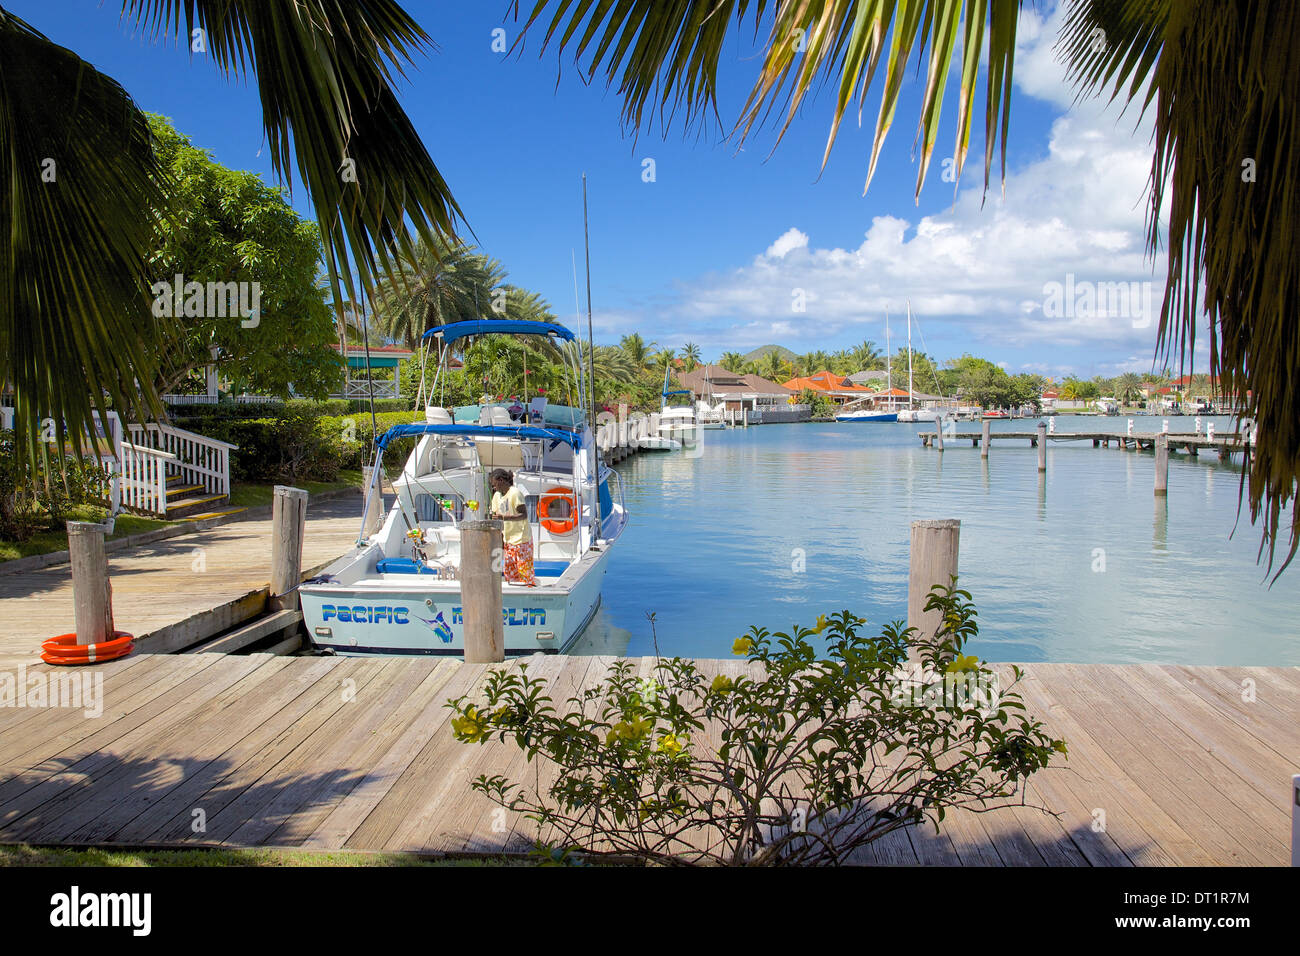 Harbour, Jolly Harbour, St. Mary, Antigua, Leeward Islands, West Indies, Caribbean, Central America - Stock Image